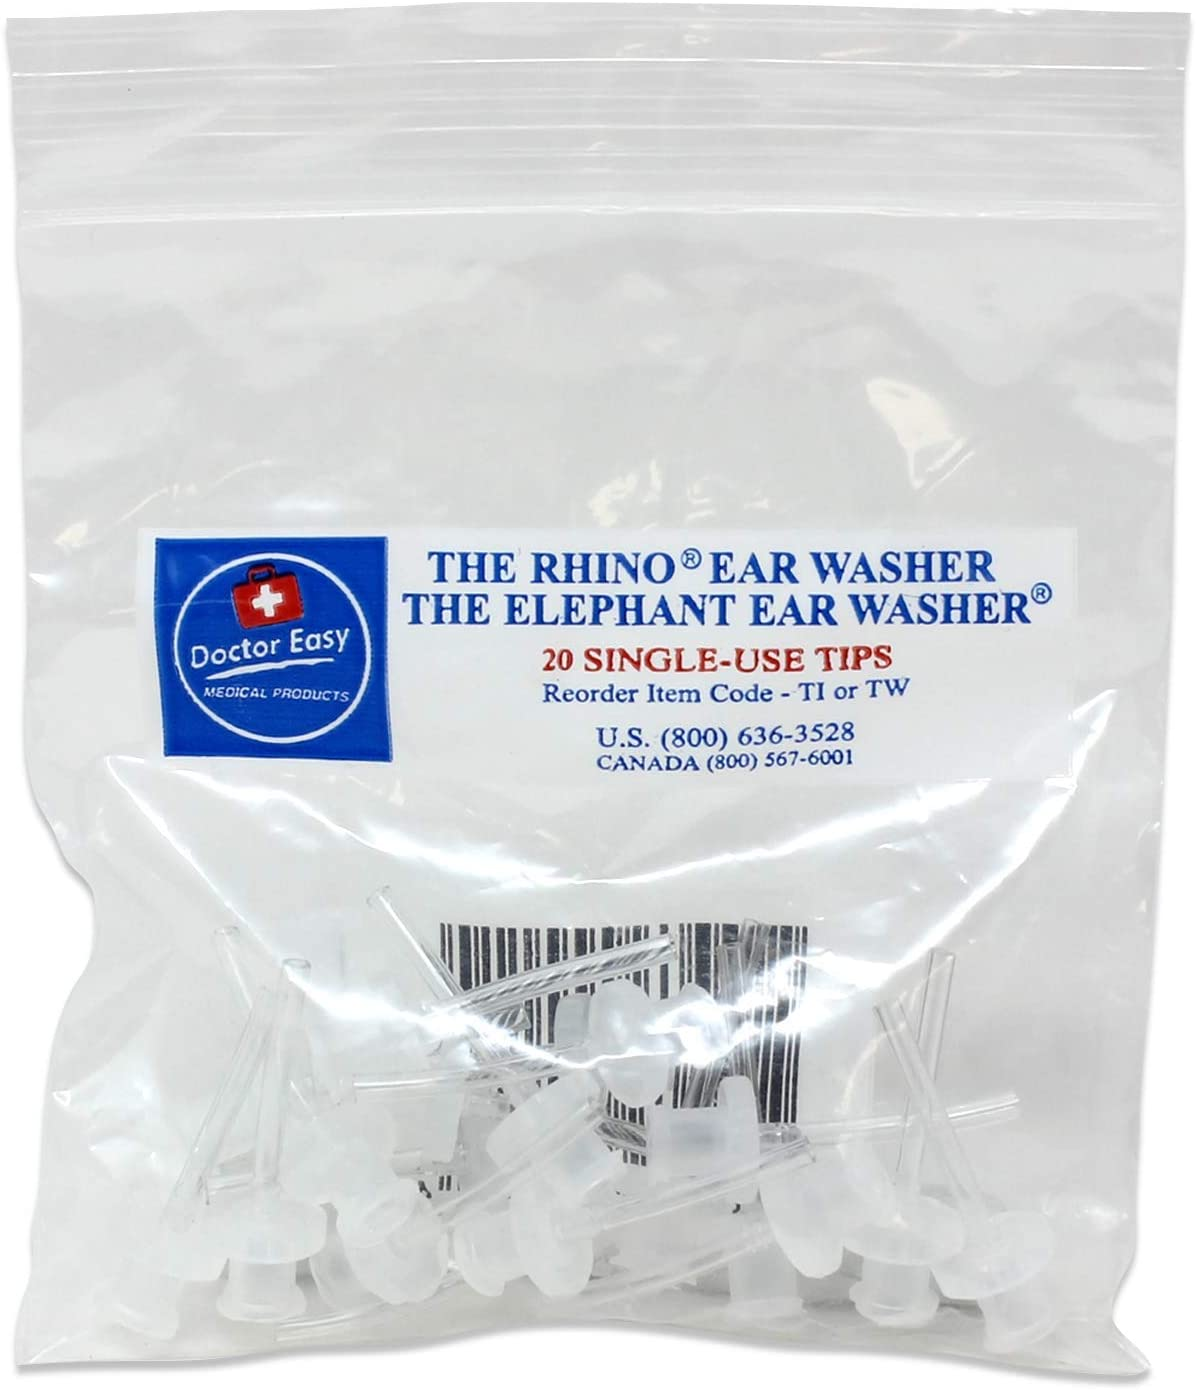 Doctor Easy Elephant & Rhino Ear Washer Disposable Tips, Bag Of 20